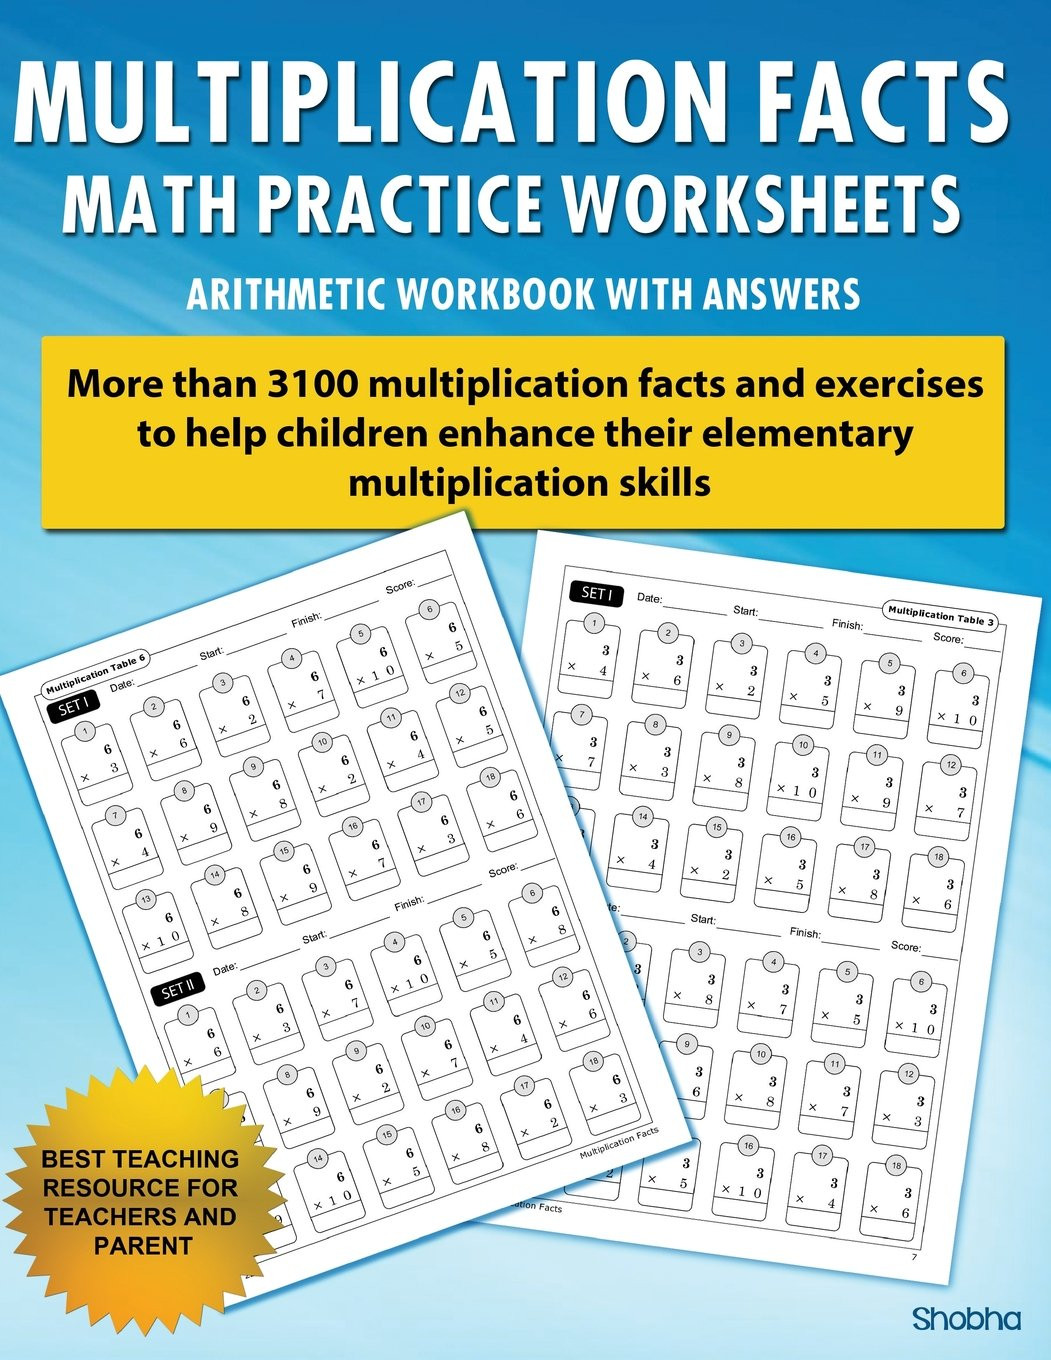 Multiplication Facts Strategies Worksheets Multiplication Facts Math Worksheet Practice Arithmetic